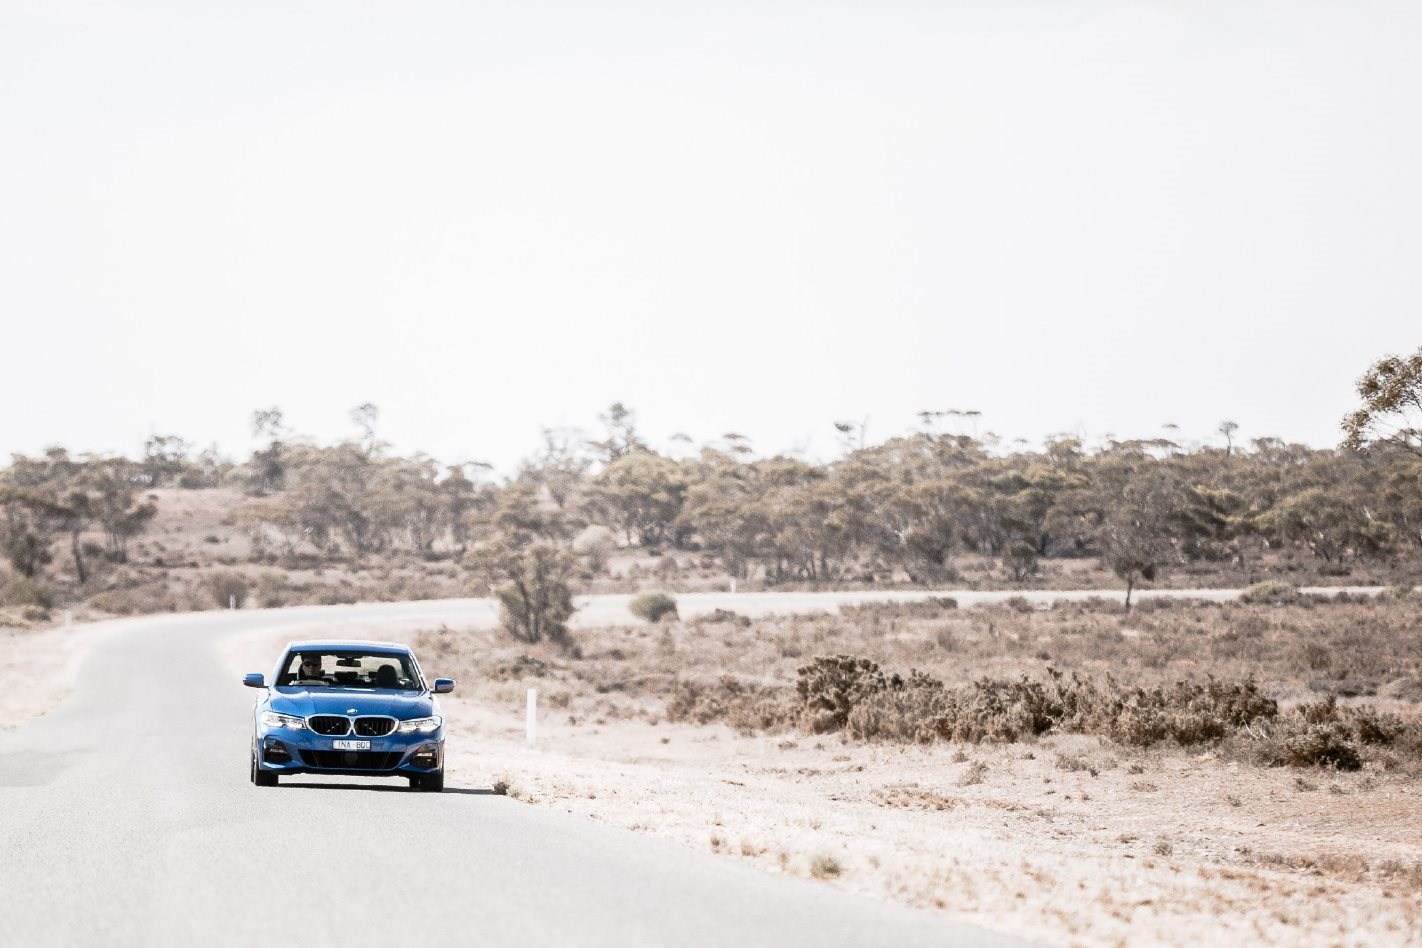 2019 BMW 3 Series feature drive: Rule of three